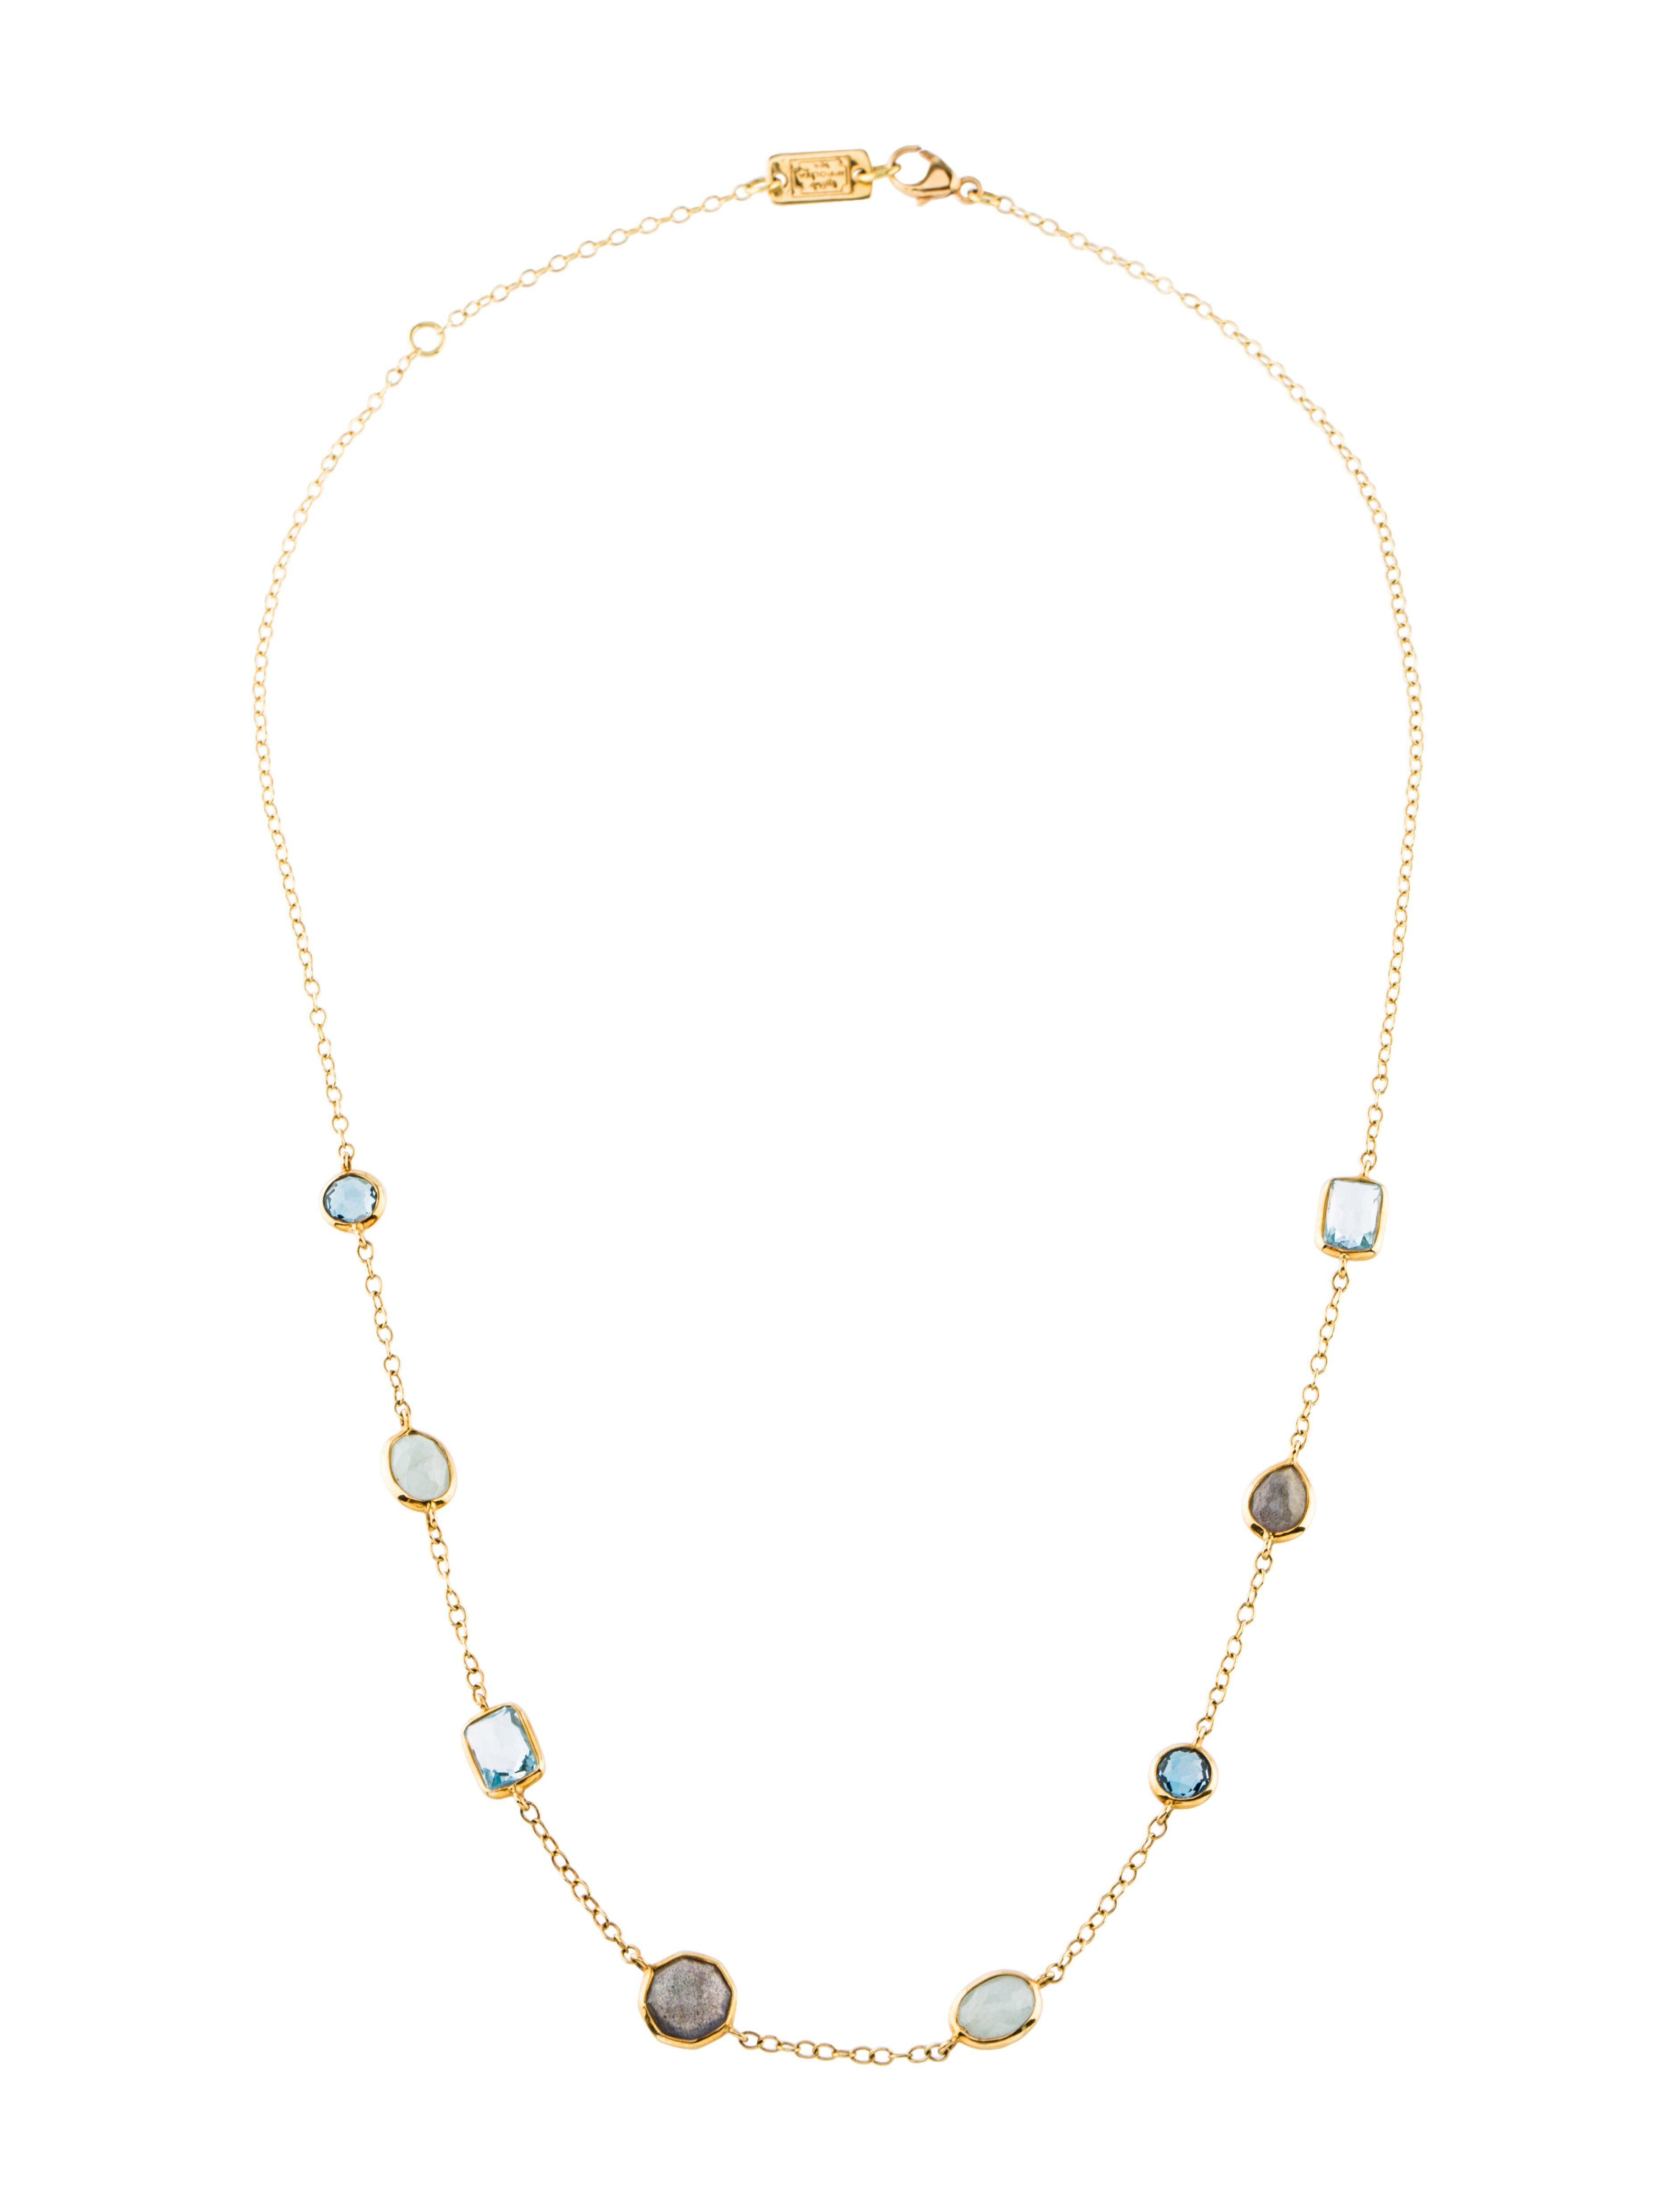 7a88ff9897f40 18K Multistone Necklace in 2019 | Dresses | Station necklace, Beaded ...